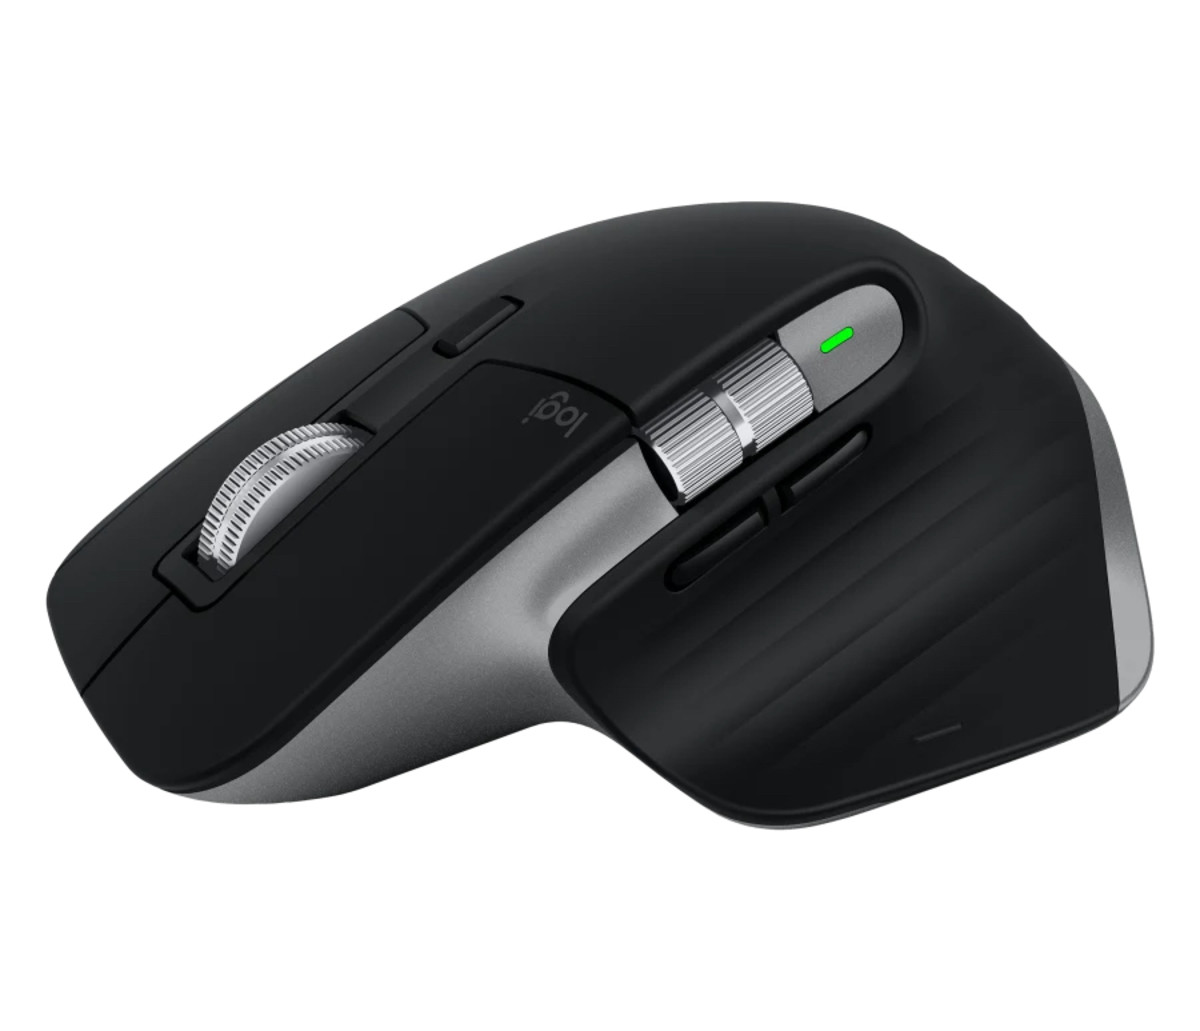 Logitech updates its best mouse for the Mac